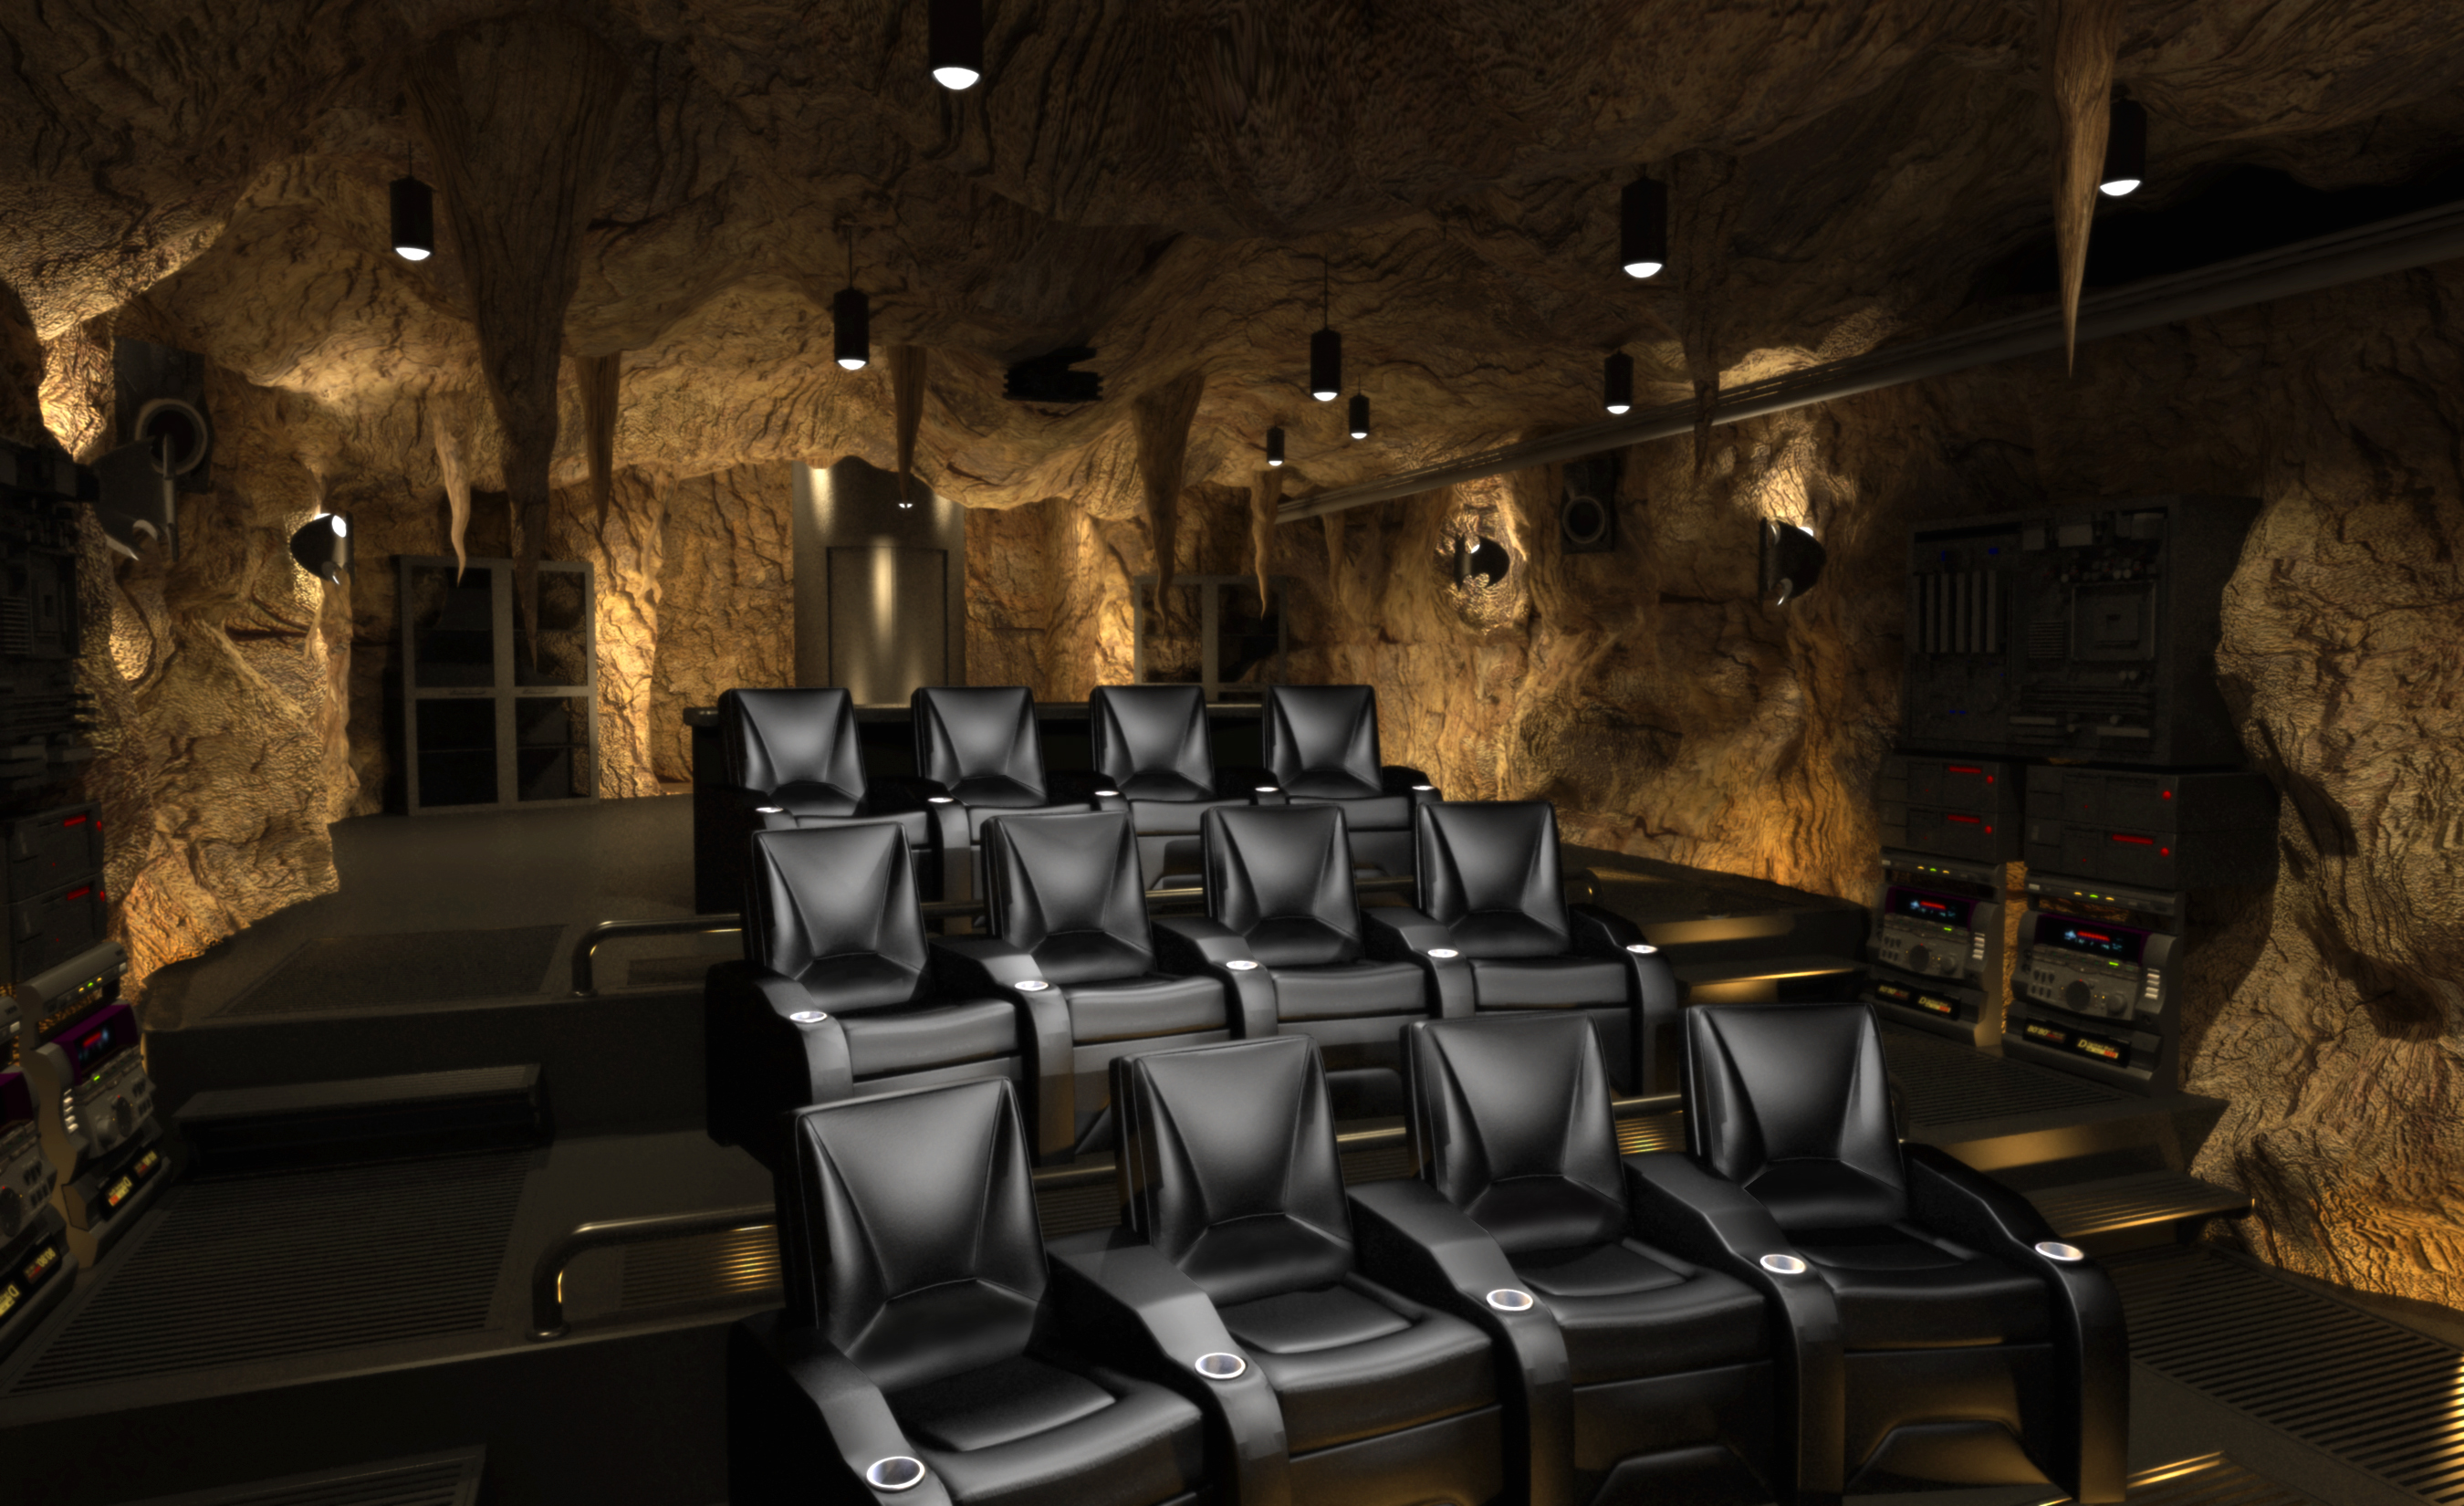 Movie Man Cave Ideas : Home theater seating designs elite